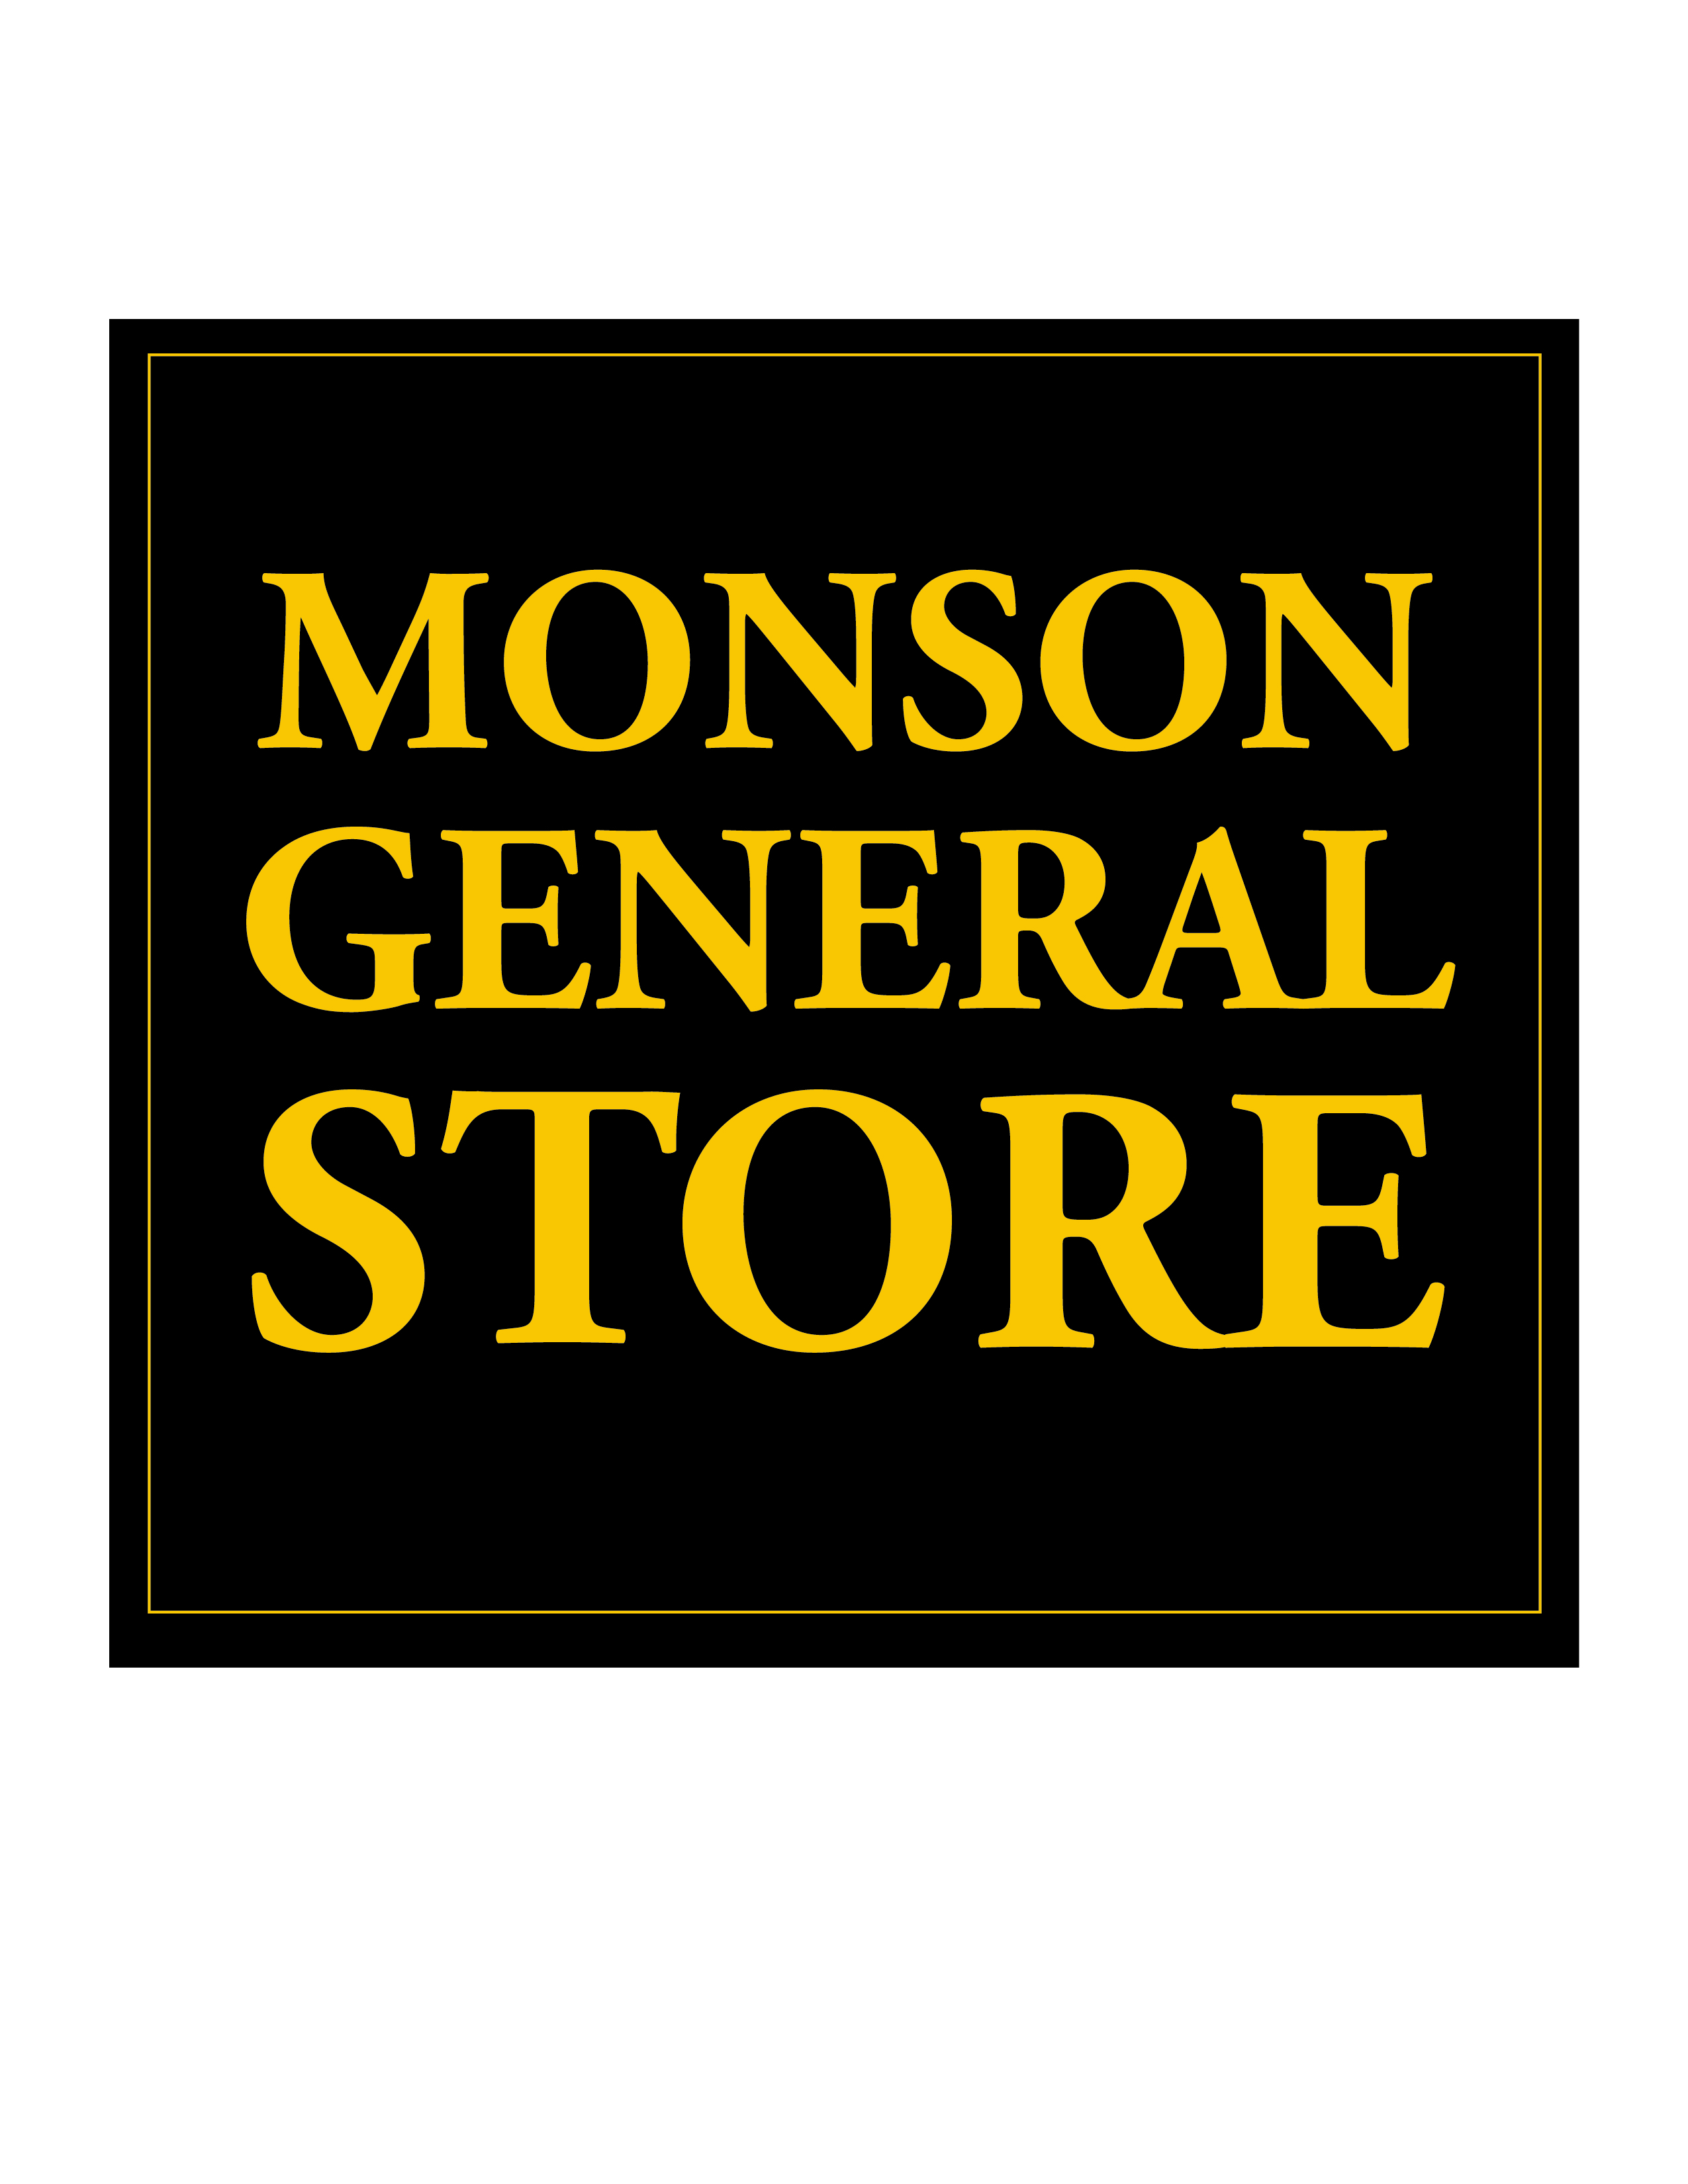 Monson General Store and The Connection Shuttle